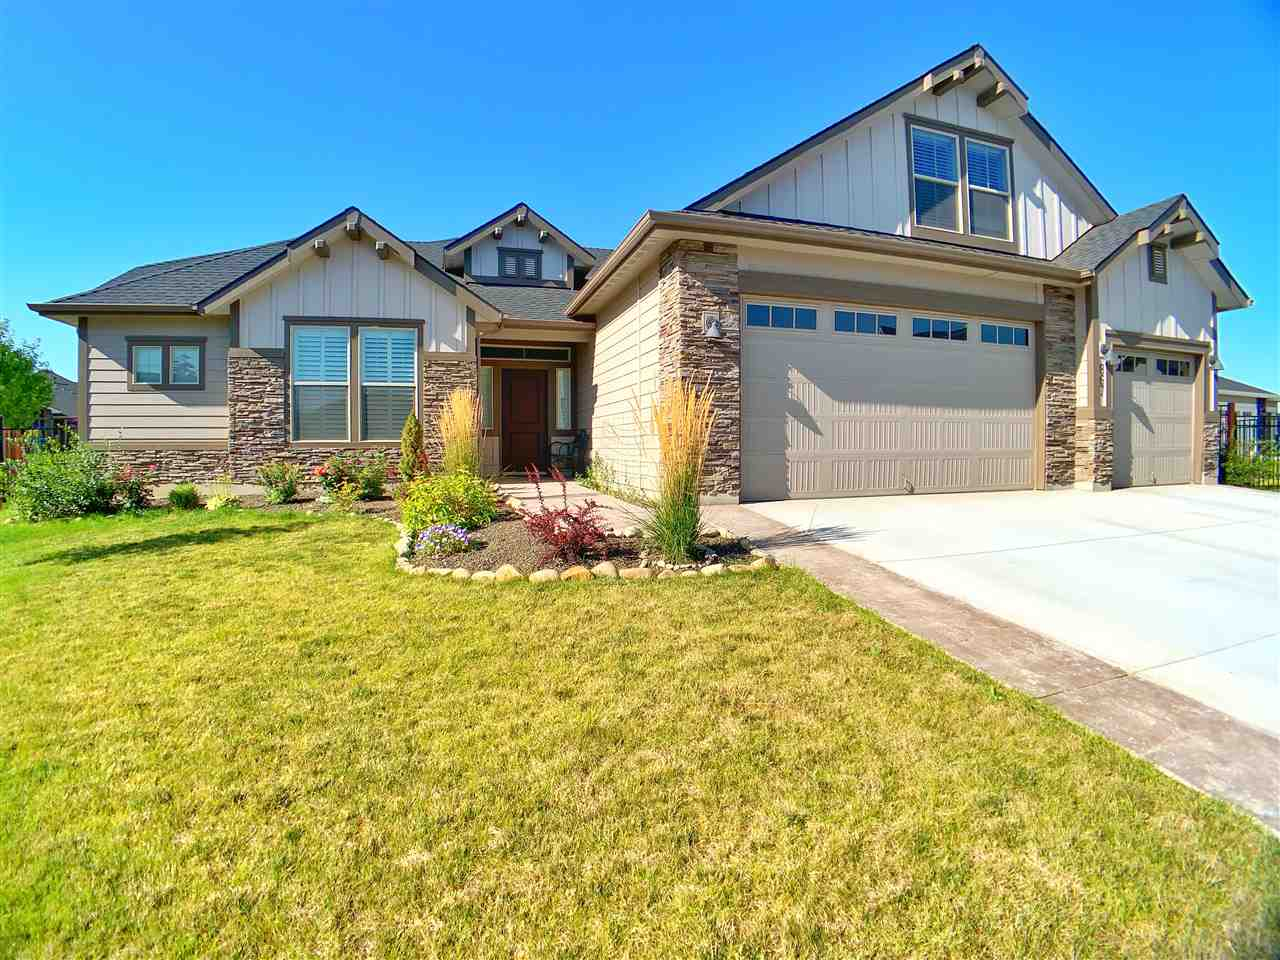 Photo for 867 N World Cup Lane, Eagle, ID 83616 (MLS # 98741522)